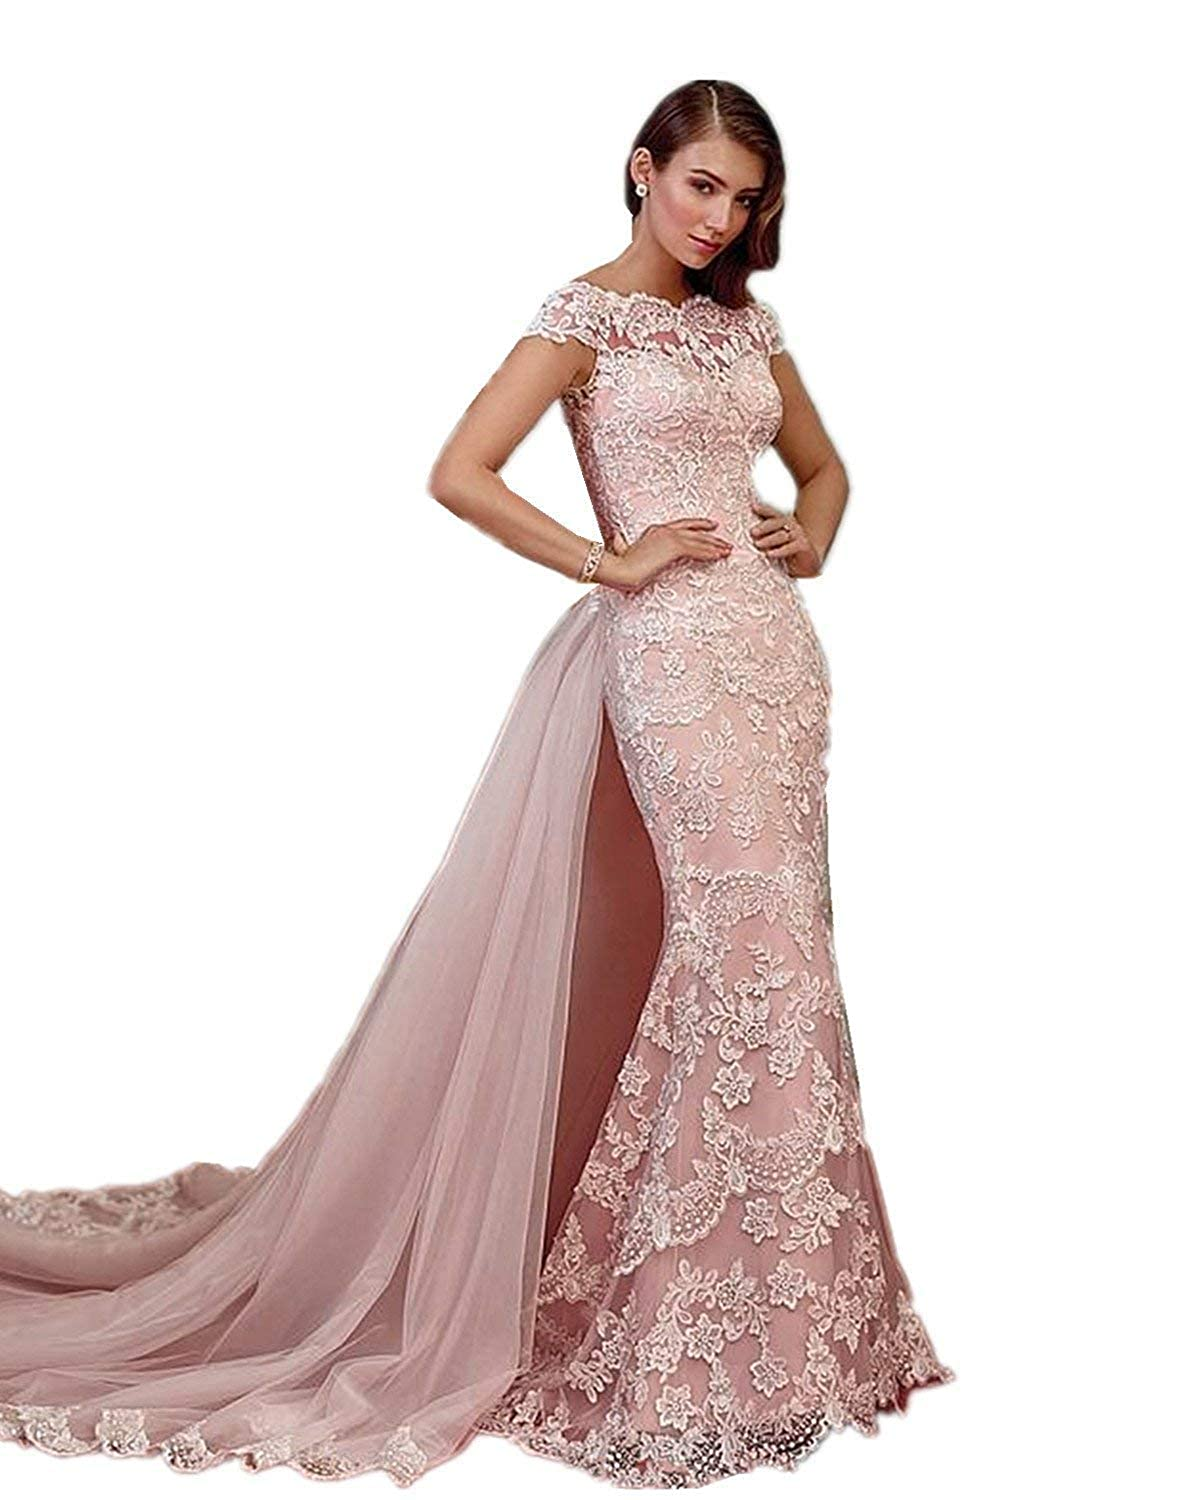 bluesh Sophie Women's Long Mermaid Lace Prom Dresses 2019 Train Cap Sleeves Evening Gown S275